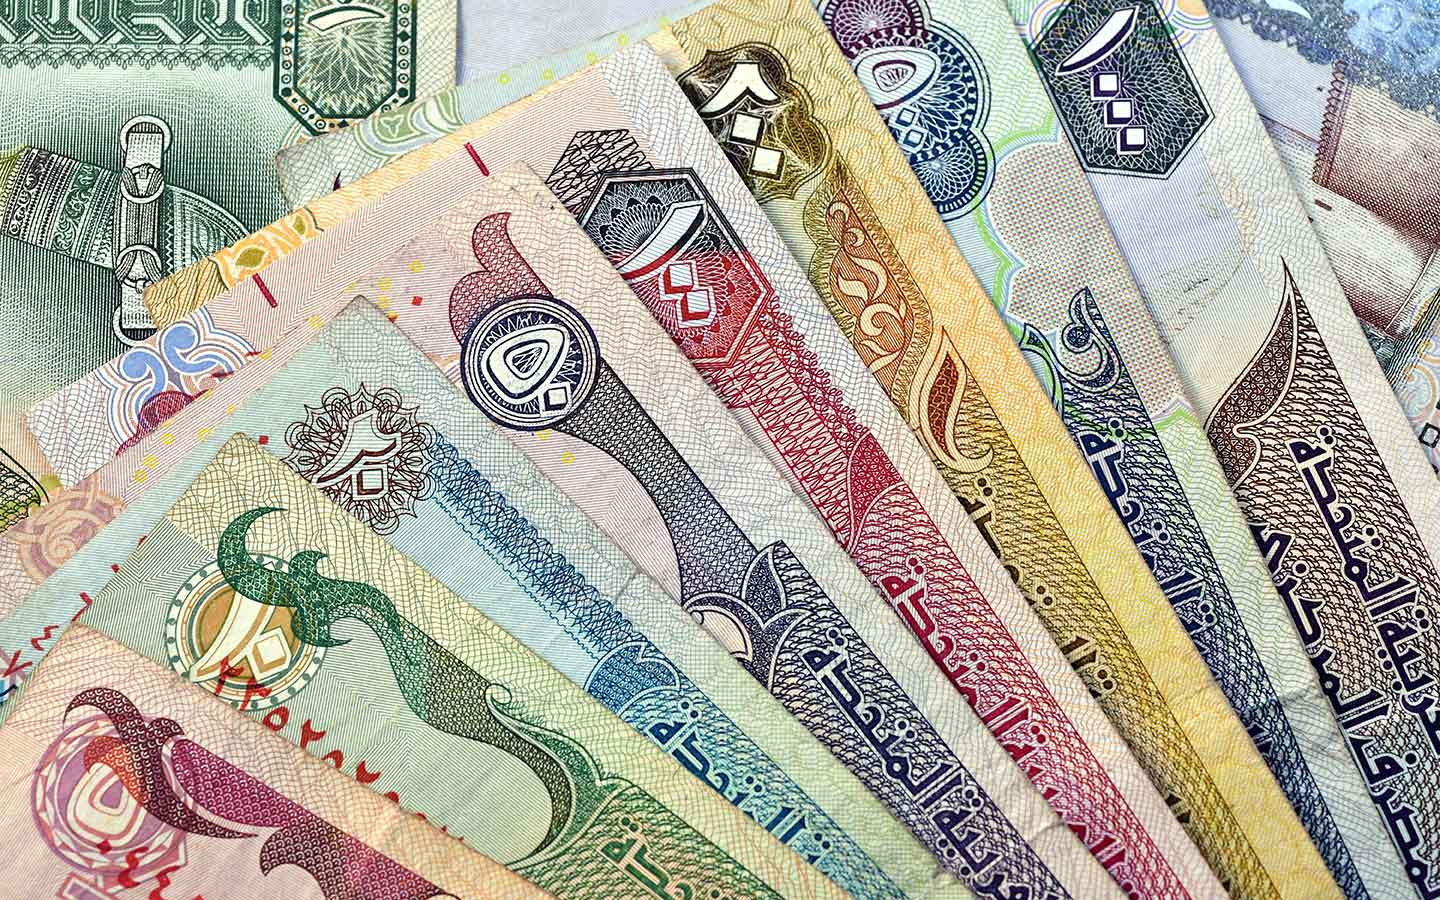 UAE celebrates 44 years of Dirham - Esquire Middle East |Arab Emirates Currency